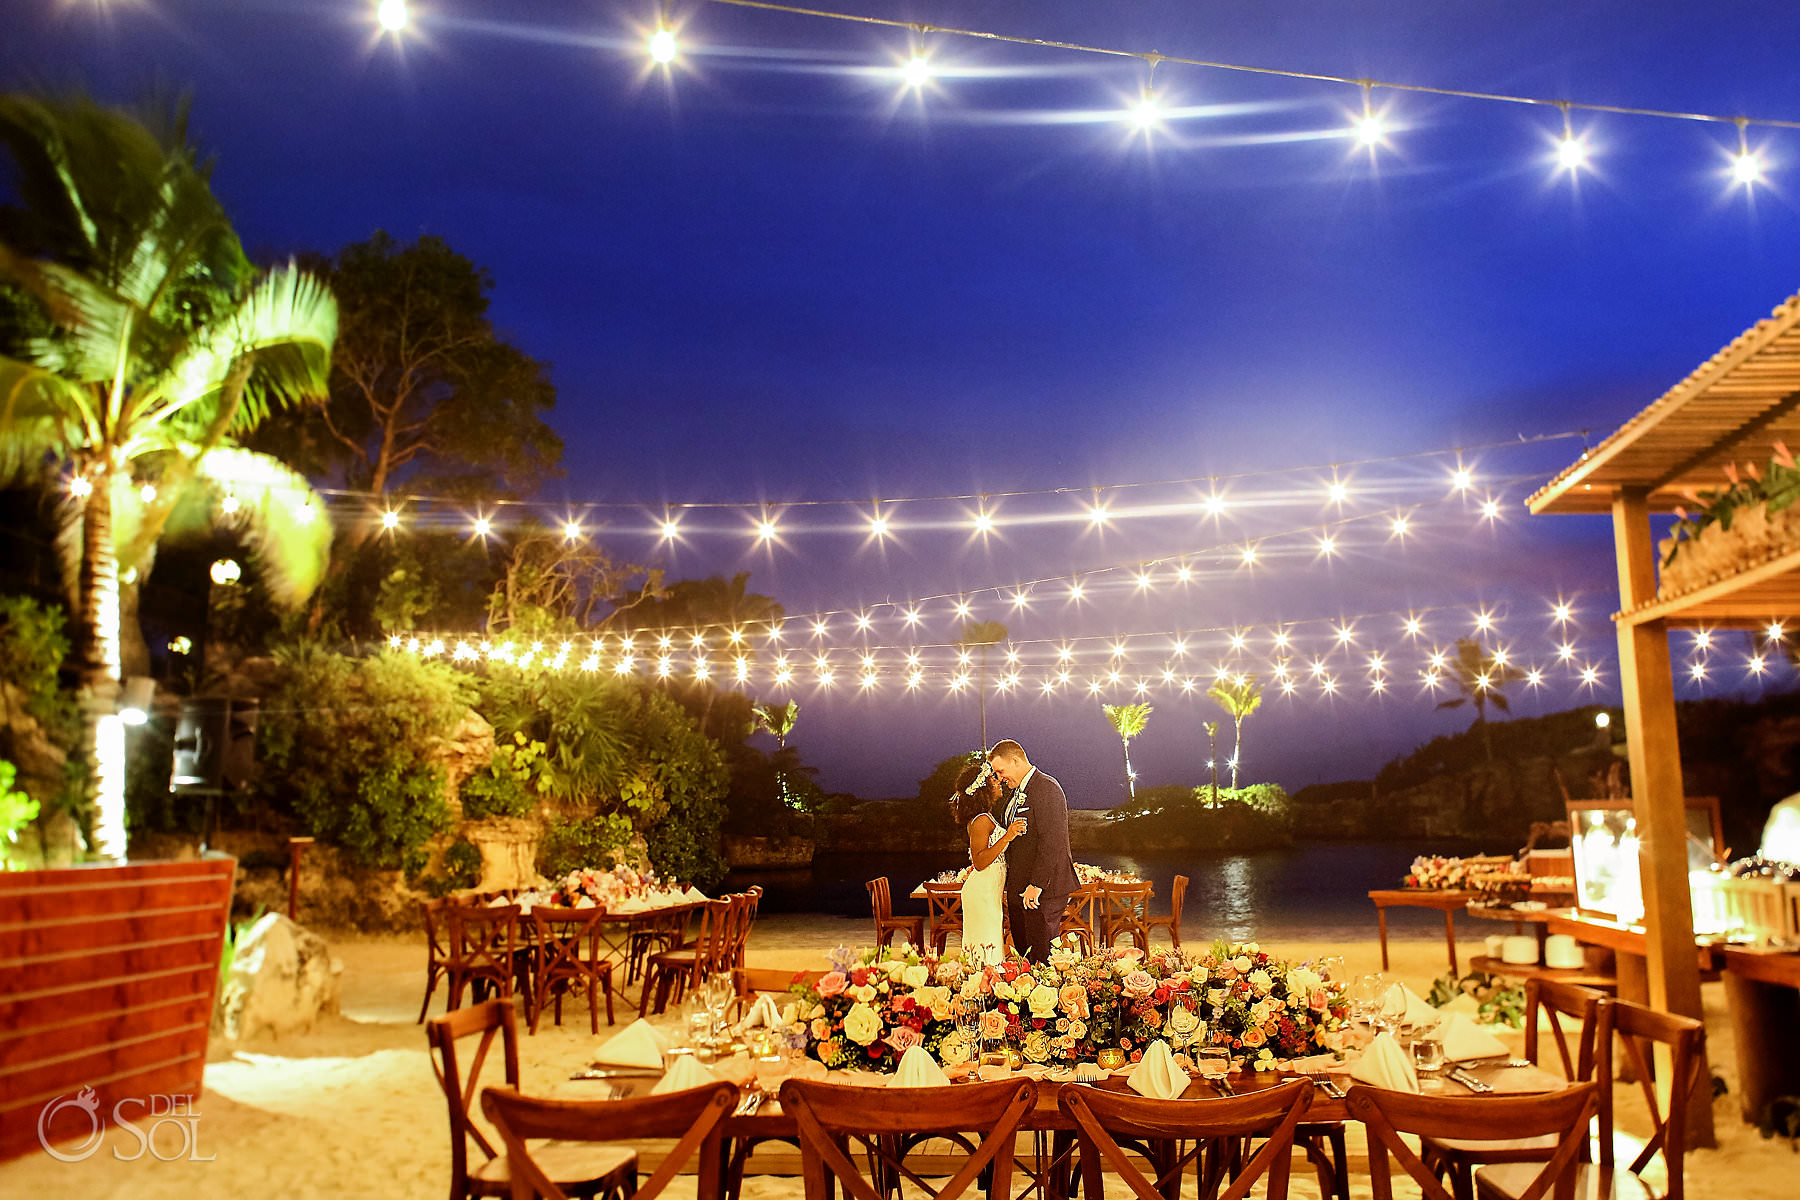 Hotel Xcaret Caleta Wedding reception setup romantic florals string lights